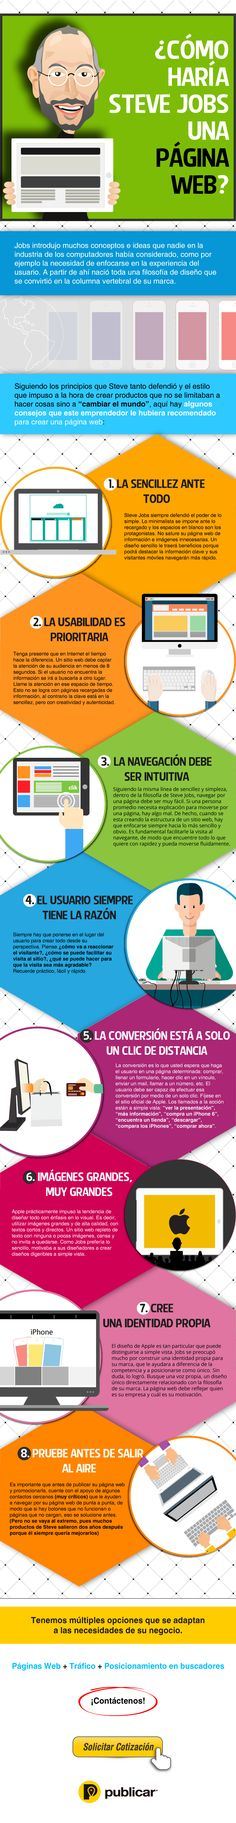 Cómo haría Steve Jobs una página web #infografia #infographic #marketing